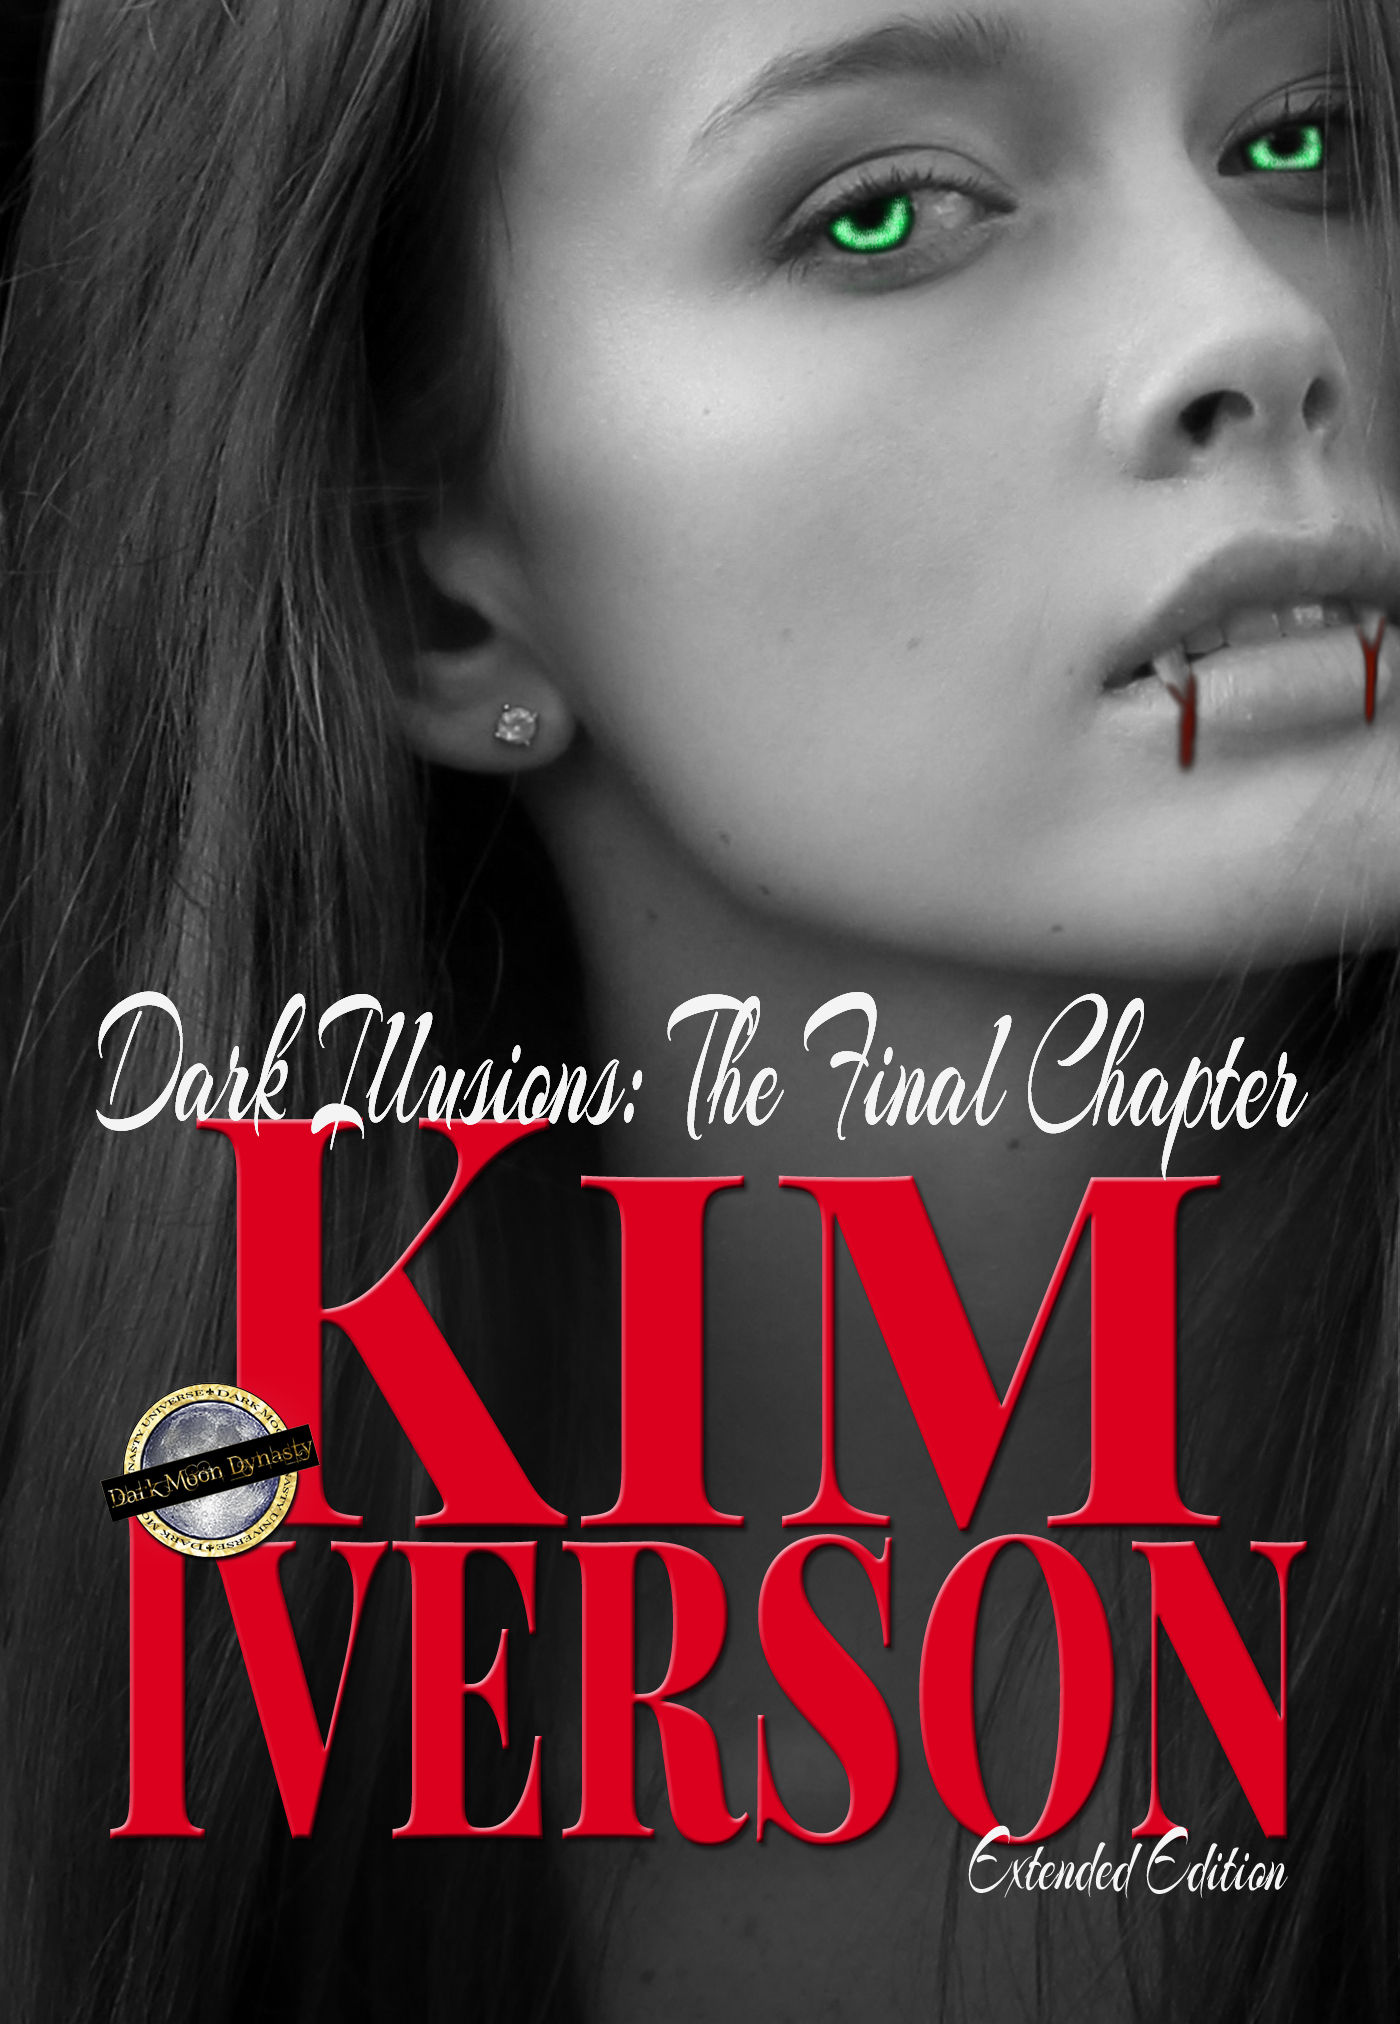 Dark Illusions: The Final Chapter - Extended Edition cover